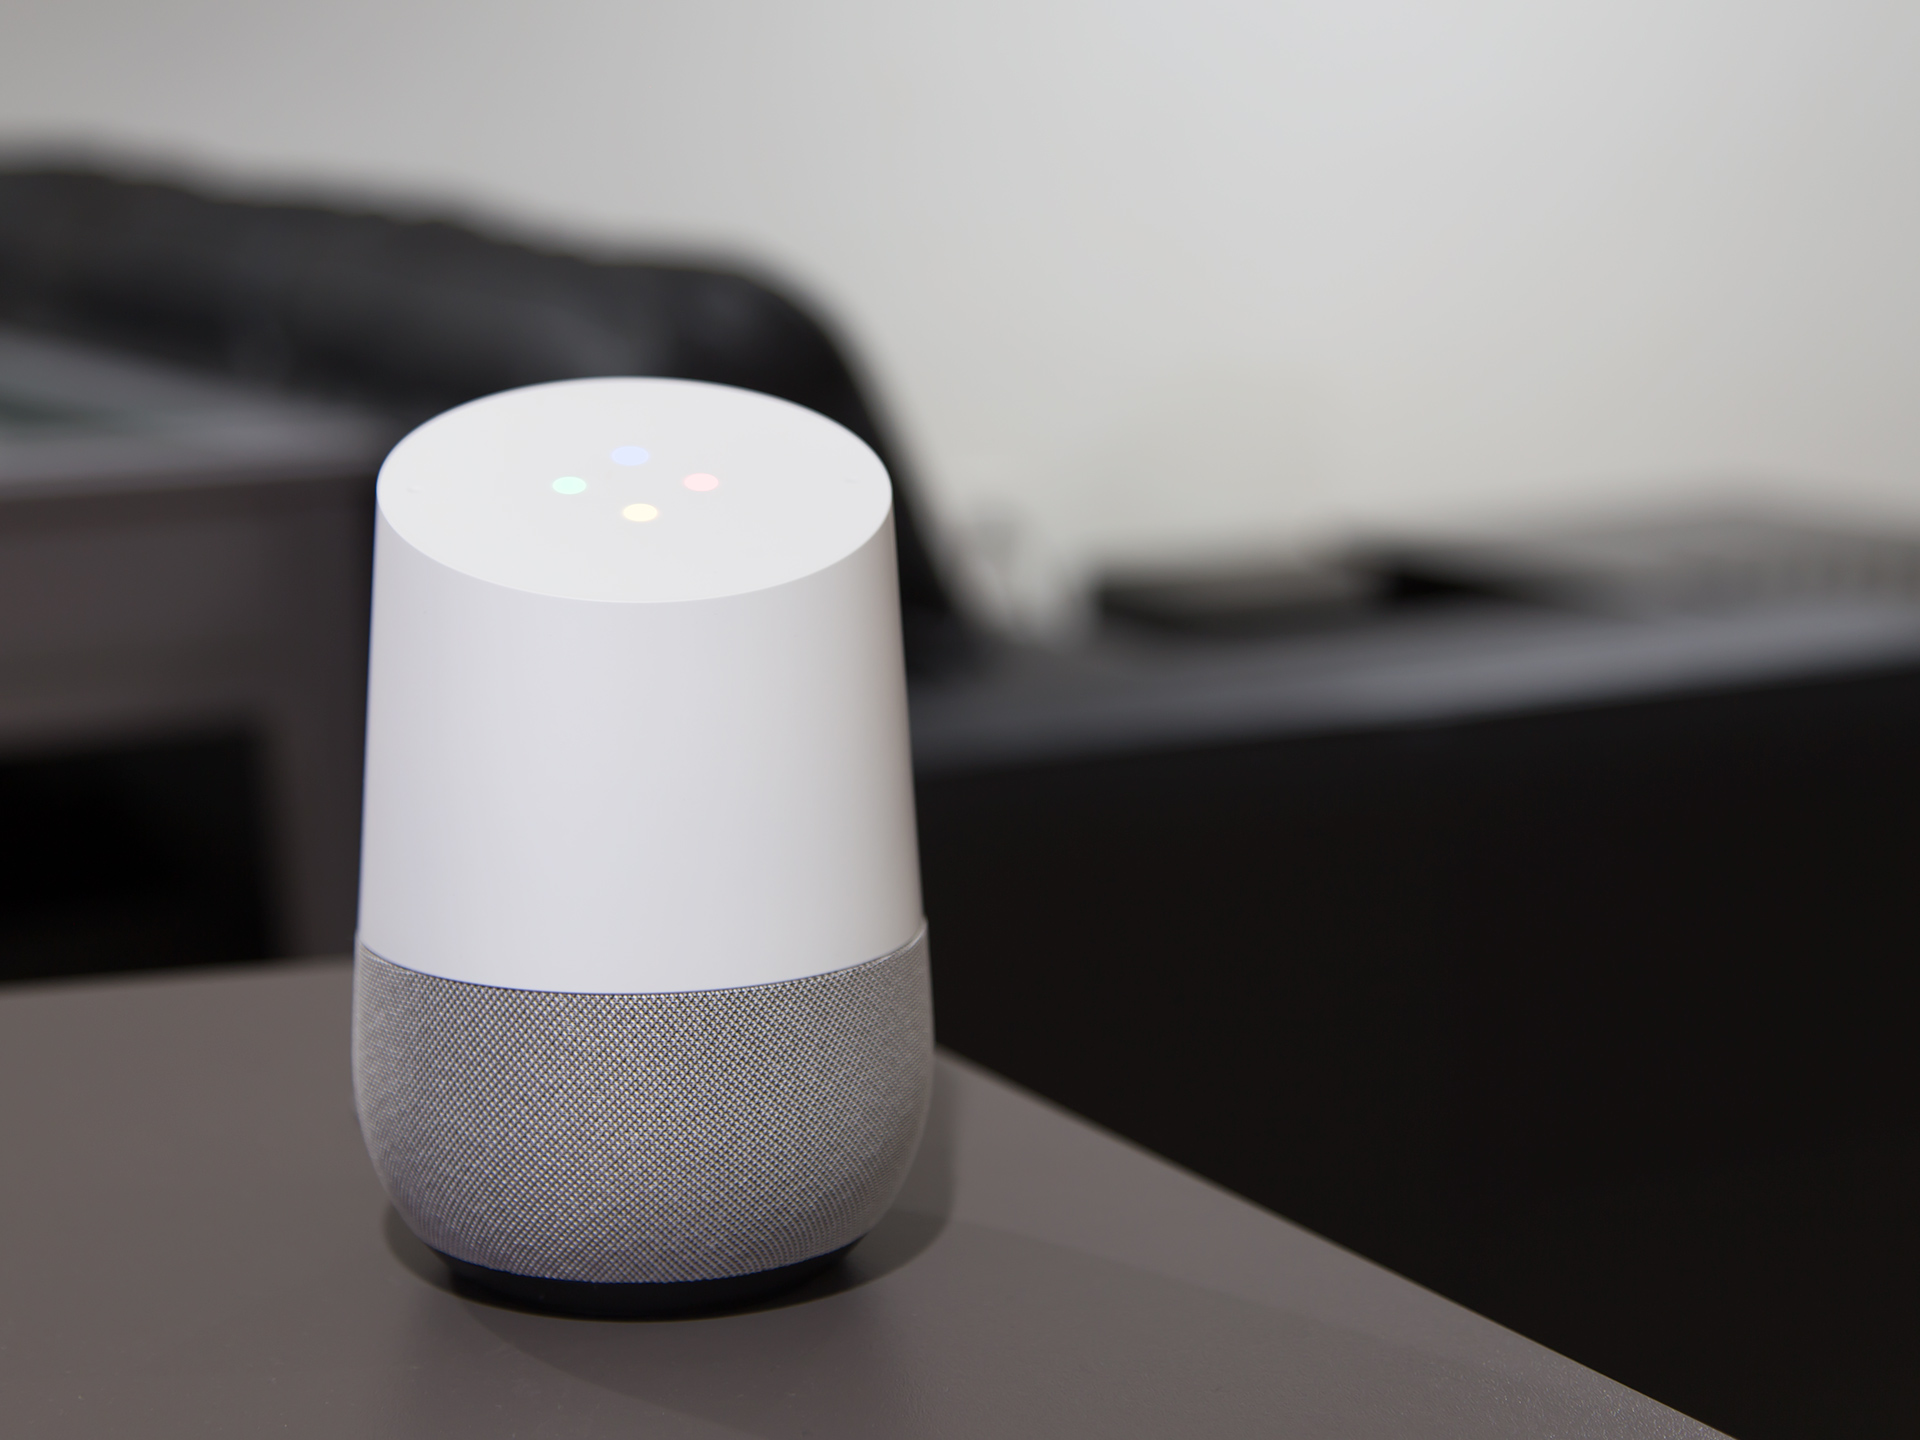 google assistant api launches today so we tested some custom